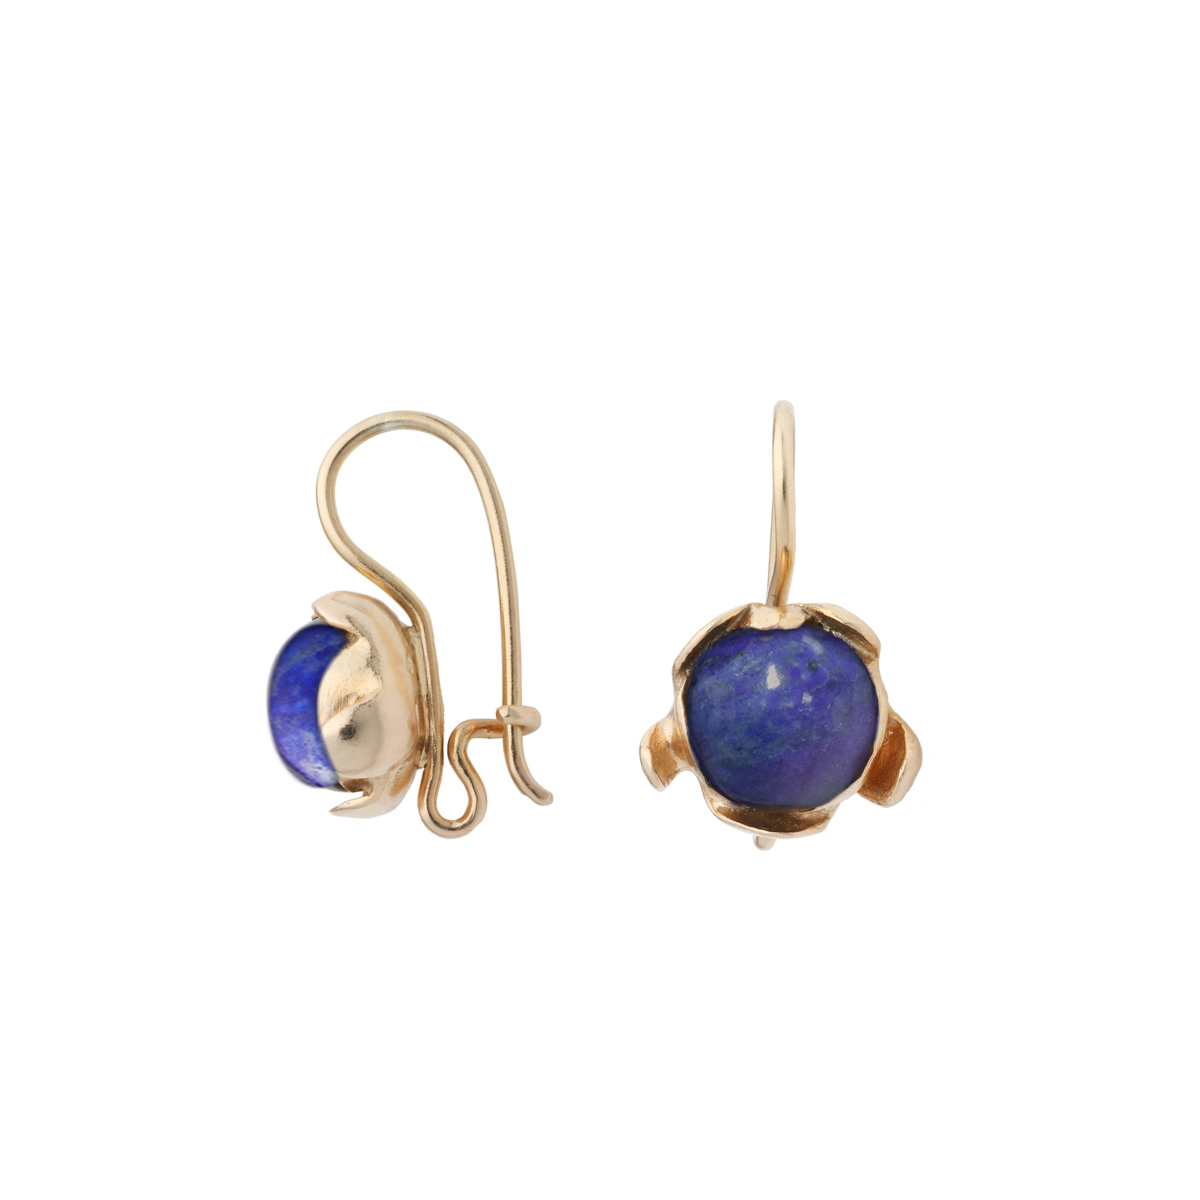 BLOSSOM hook earrings with lapis lazuli